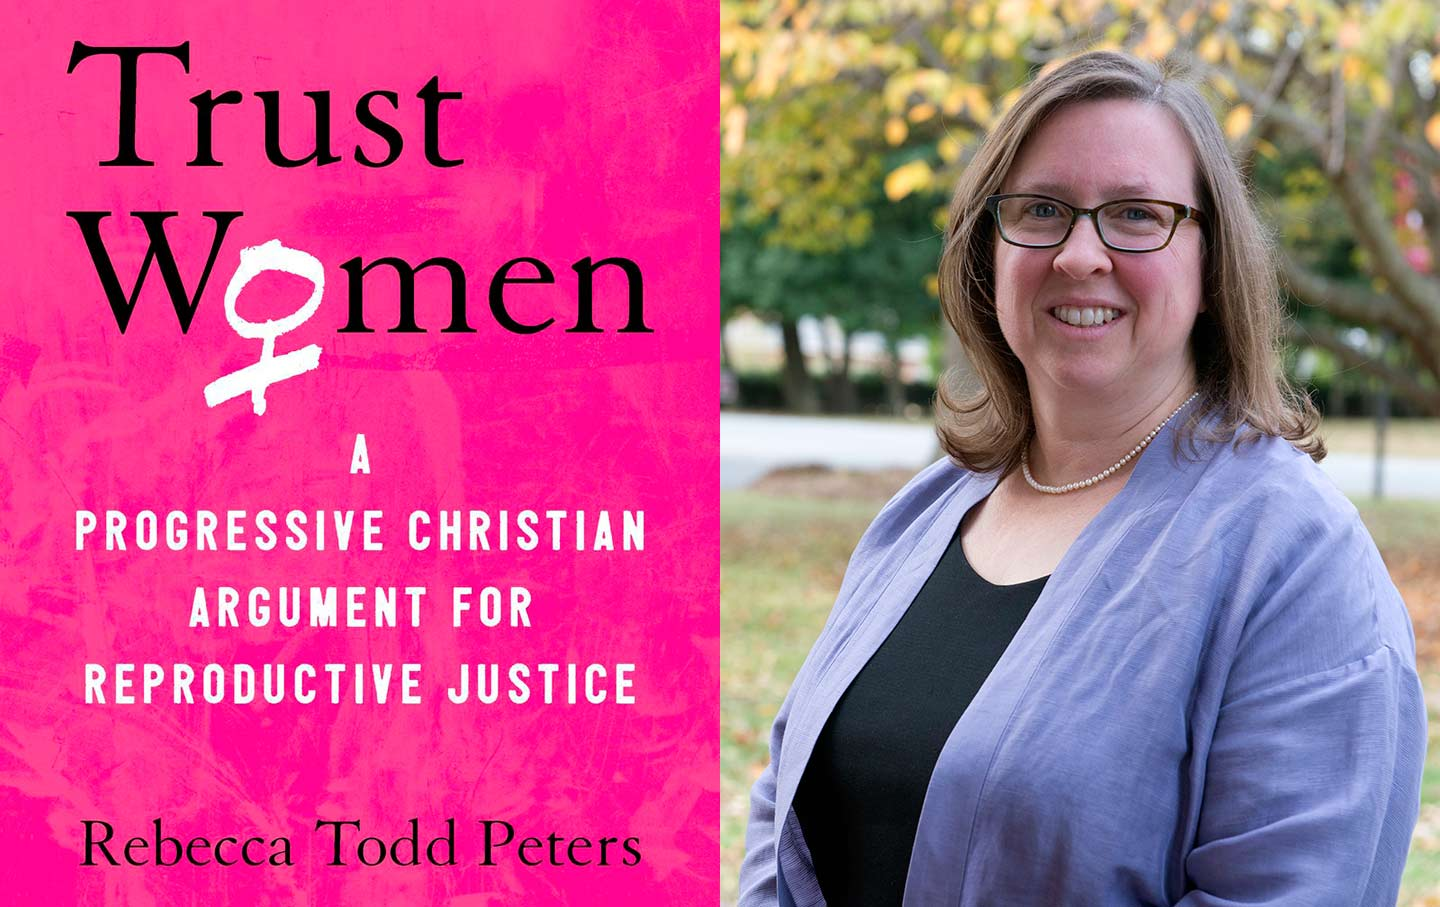 Rebecca Todd Peters, author of Trust Women